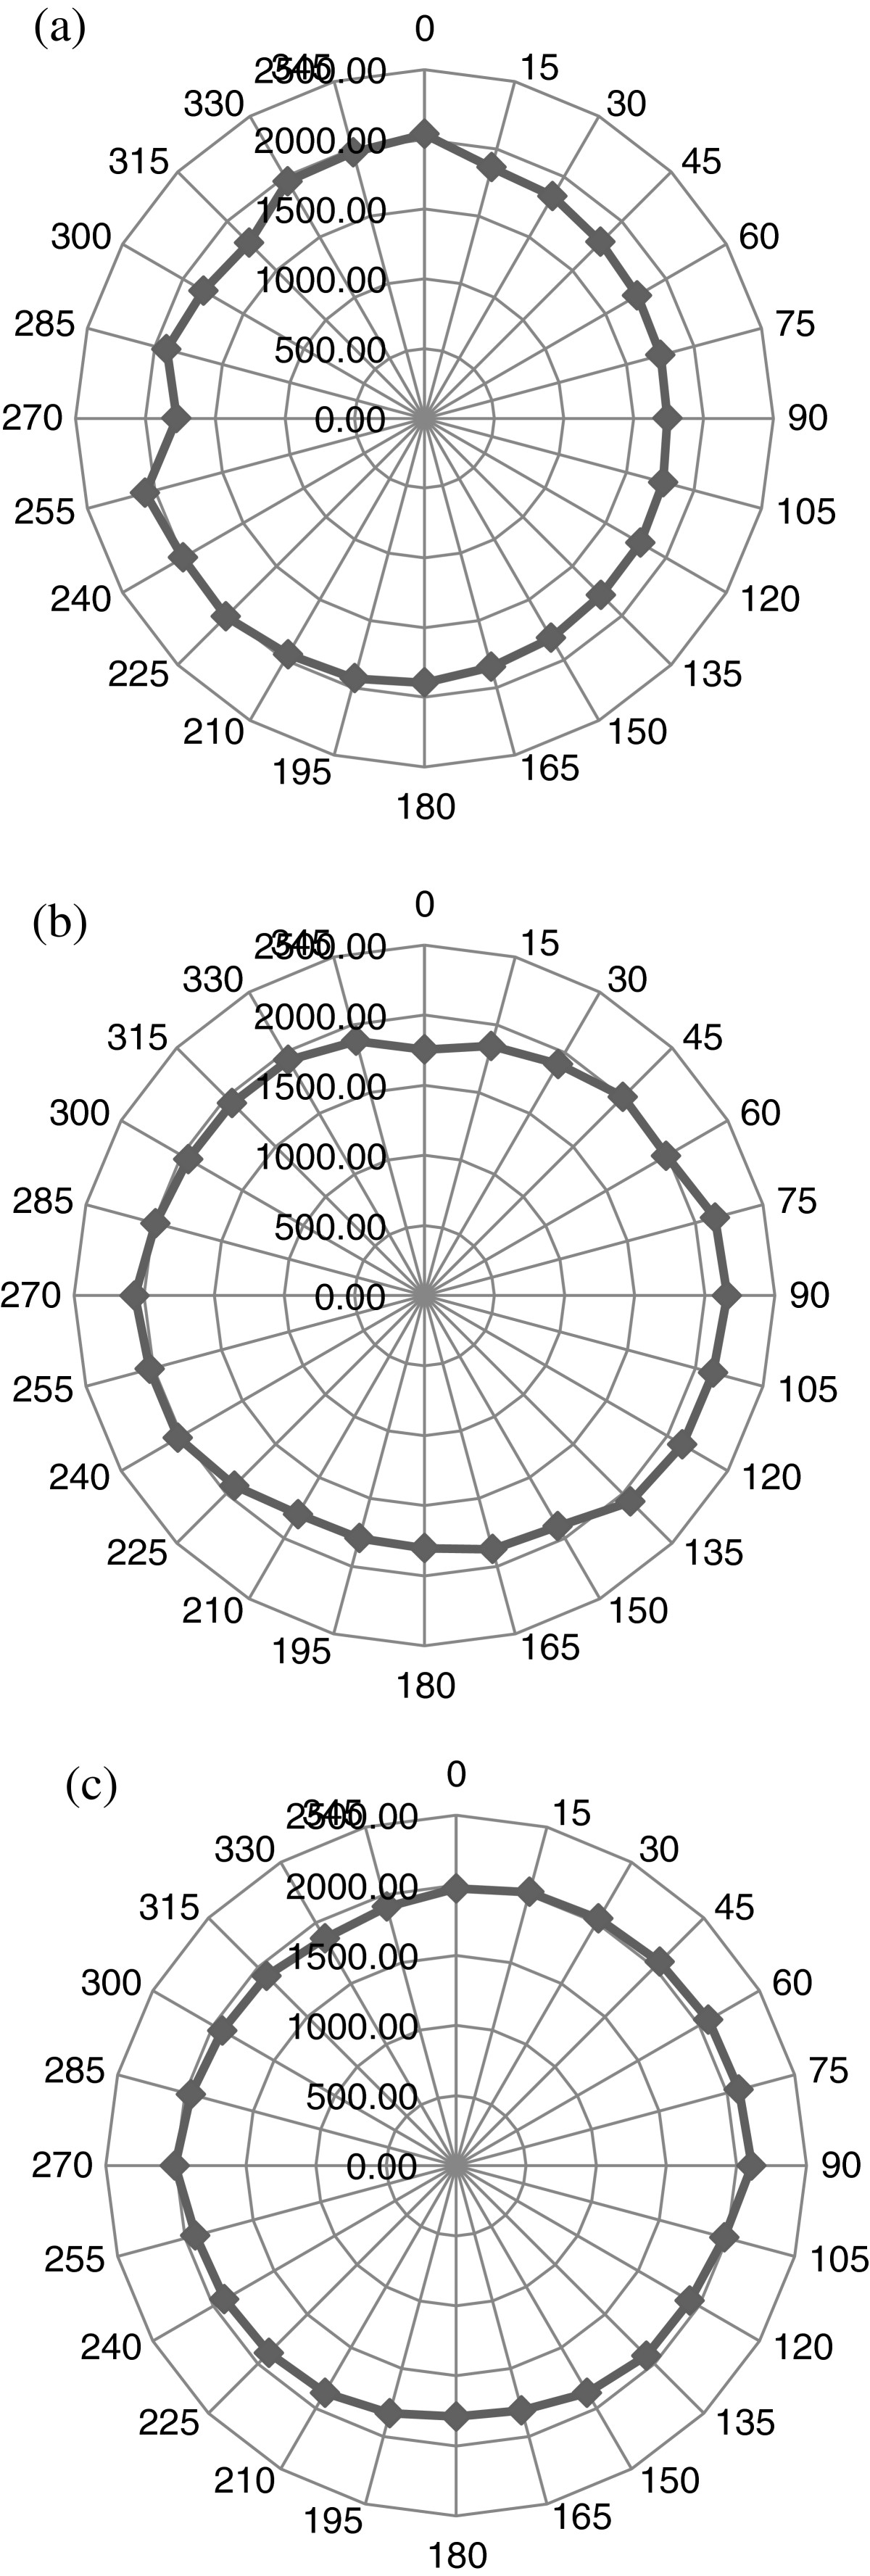 https://static-content.springer.com/image/art%3A10.1186%2F2050-5736-1-5/MediaObjects/40349_2012_Article_6_Fig7_HTML.jpg